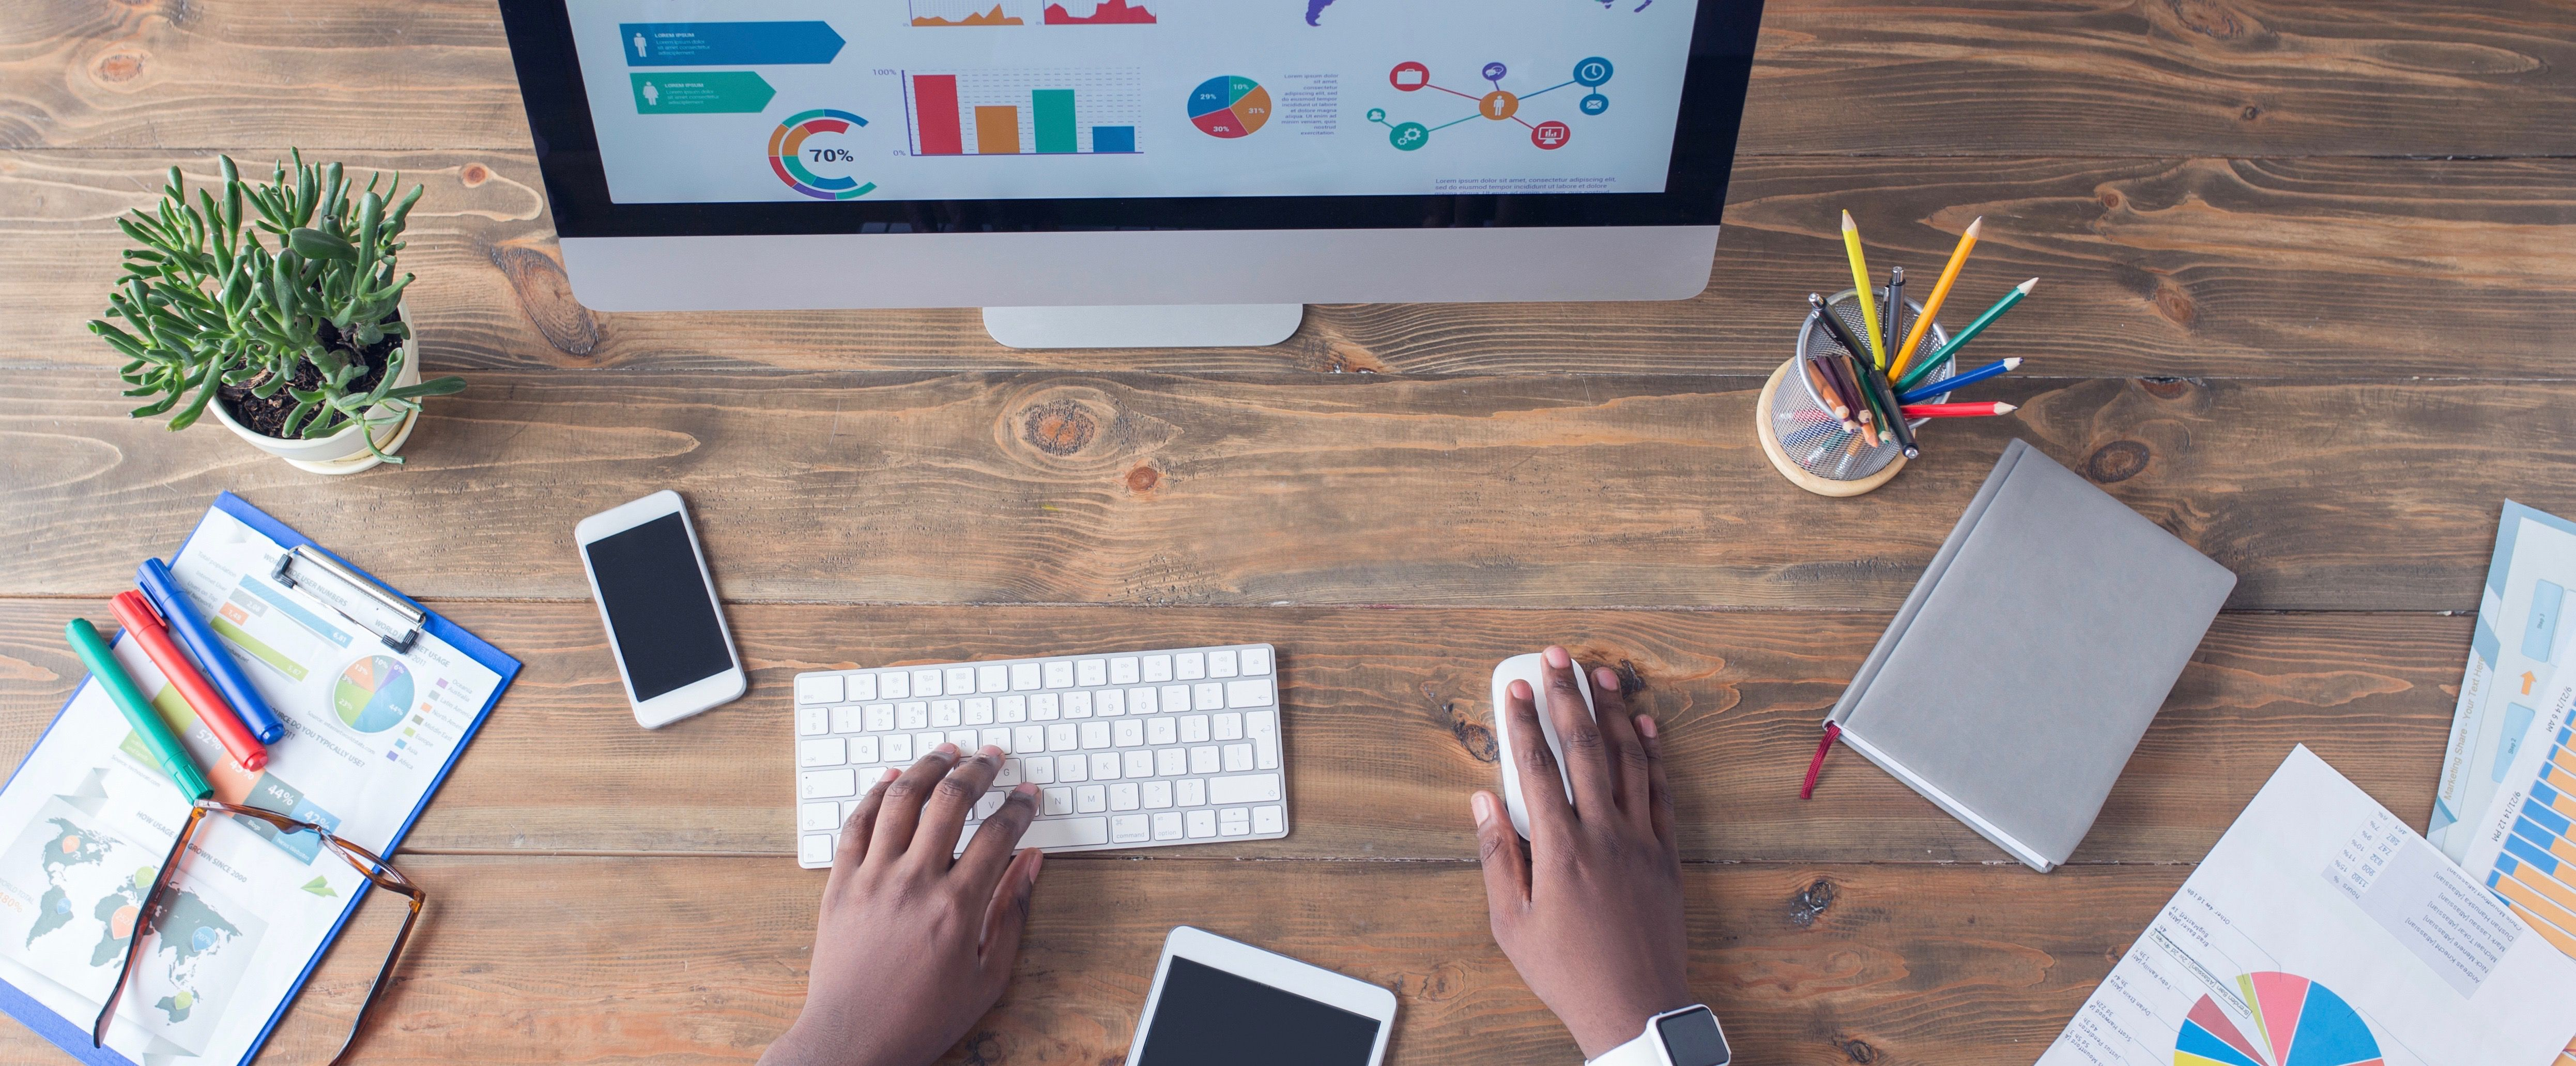 7 Digital Marketing Strategies and How to Plan Your Own Campaign [Template]